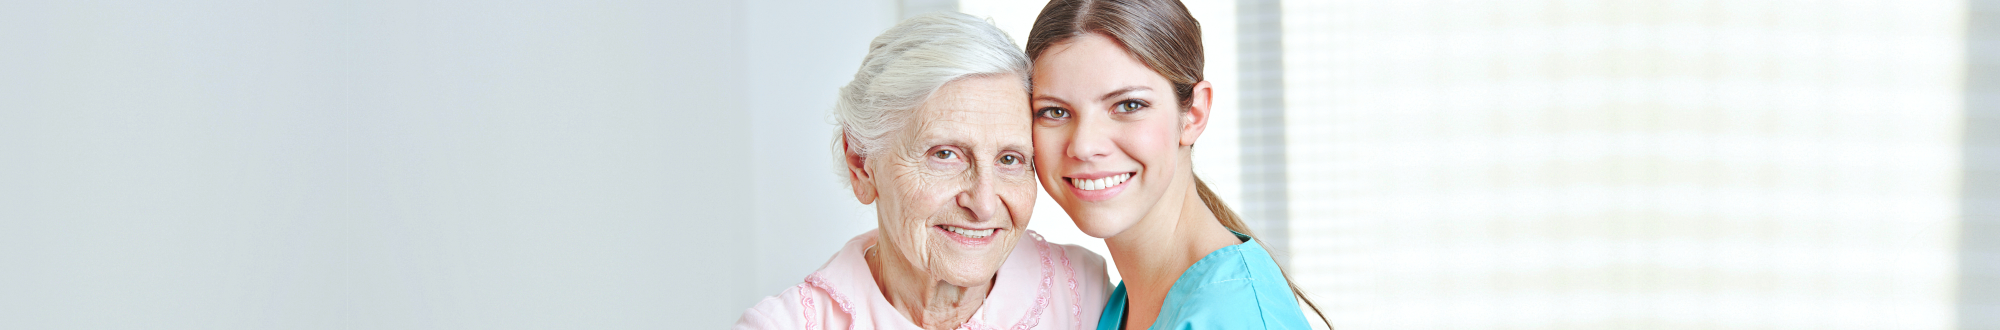 senior woman and female caregiver smiling